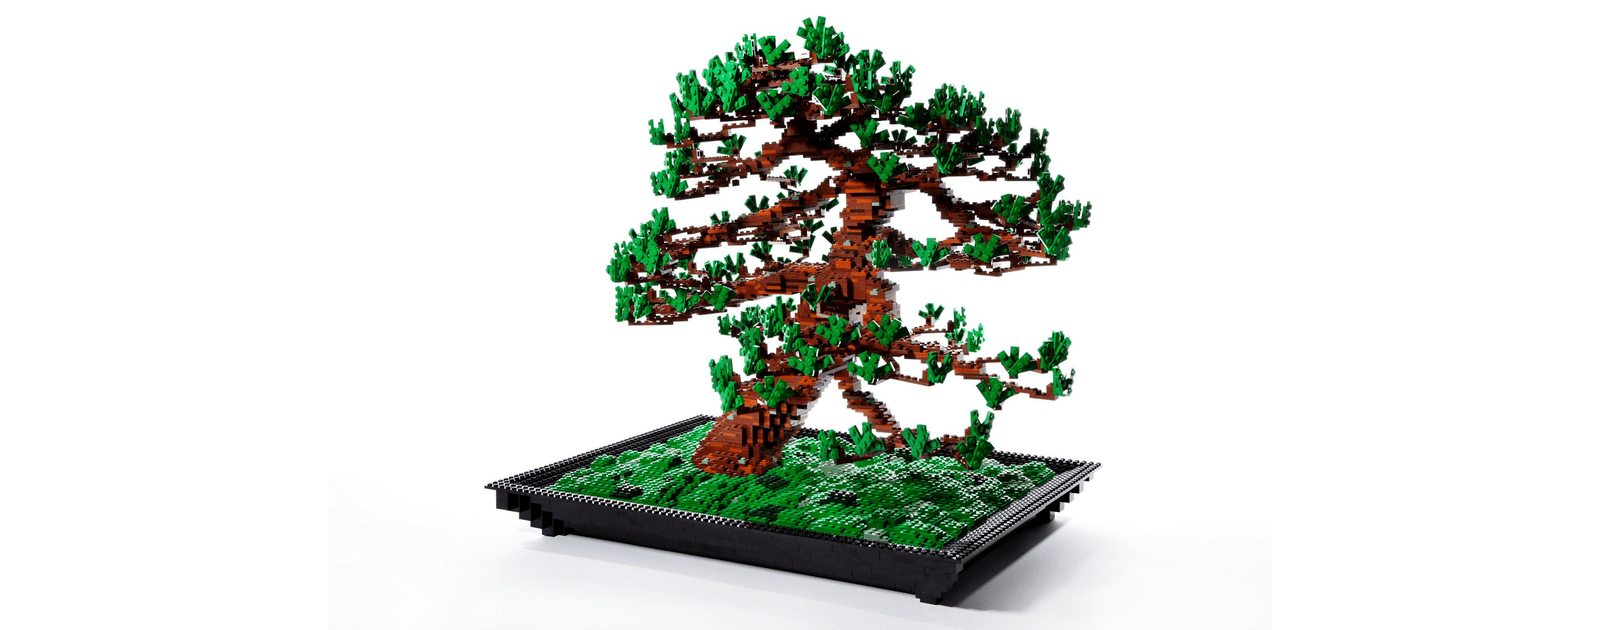 LEGO Will Make Sustainable Blocks From Sugarcane. But Is it Really Eco Friendly?